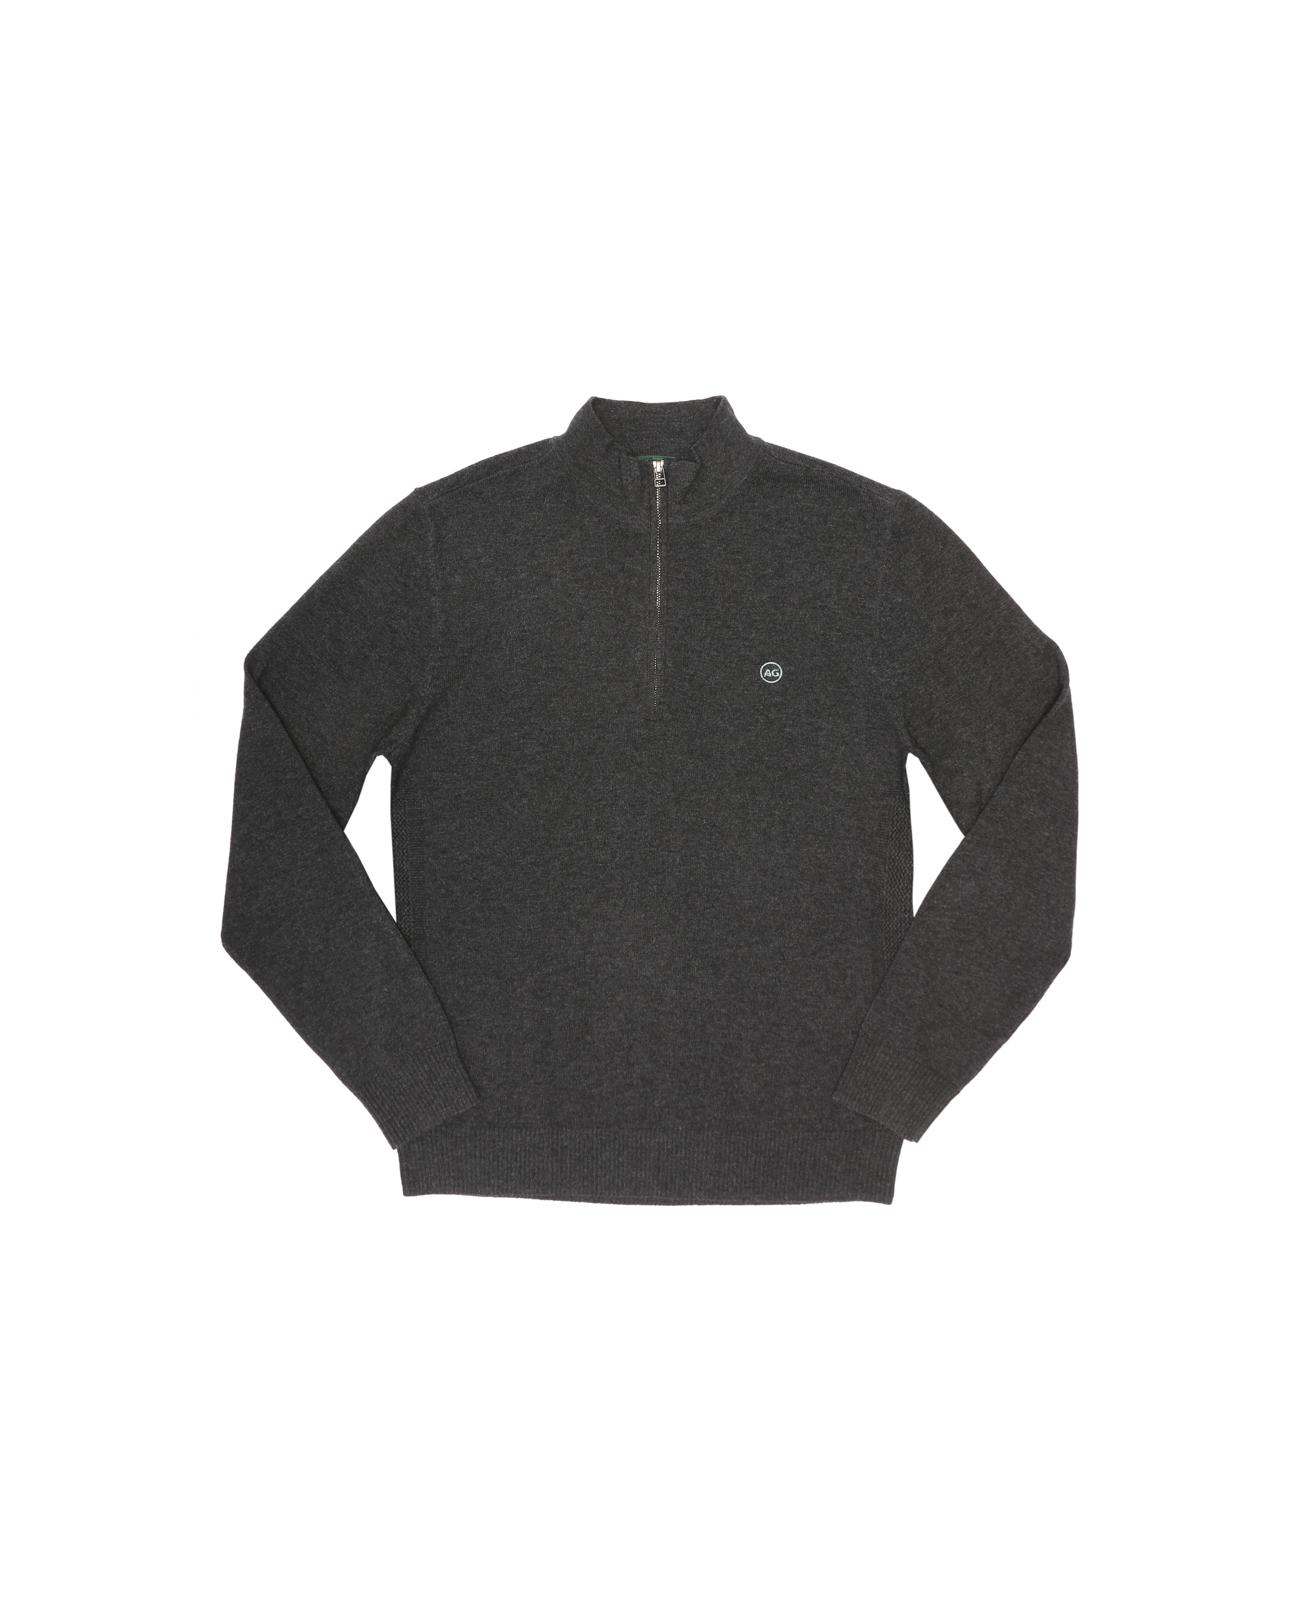 The Baker 3/4 Zip Pullover